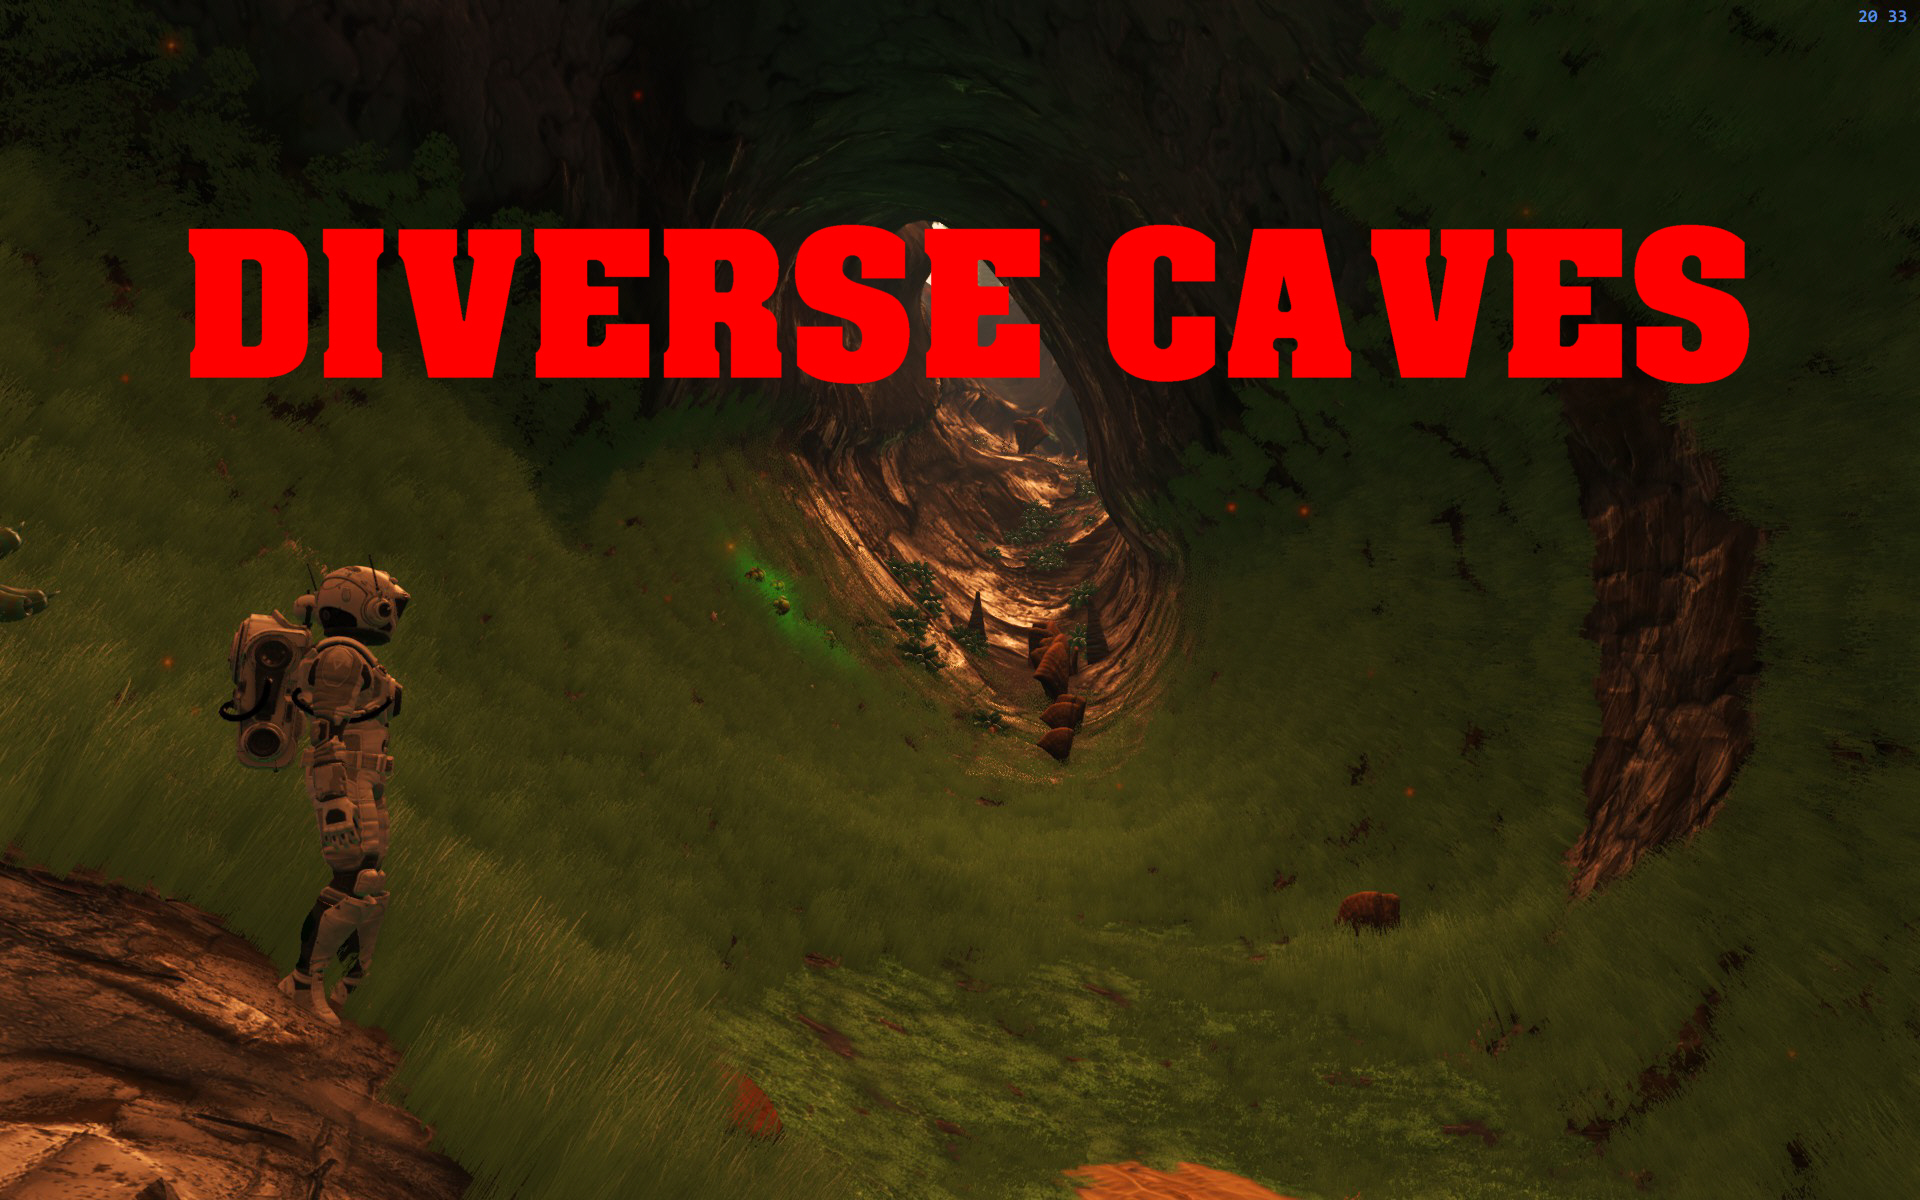 DIVERSE CAVES for NEXT